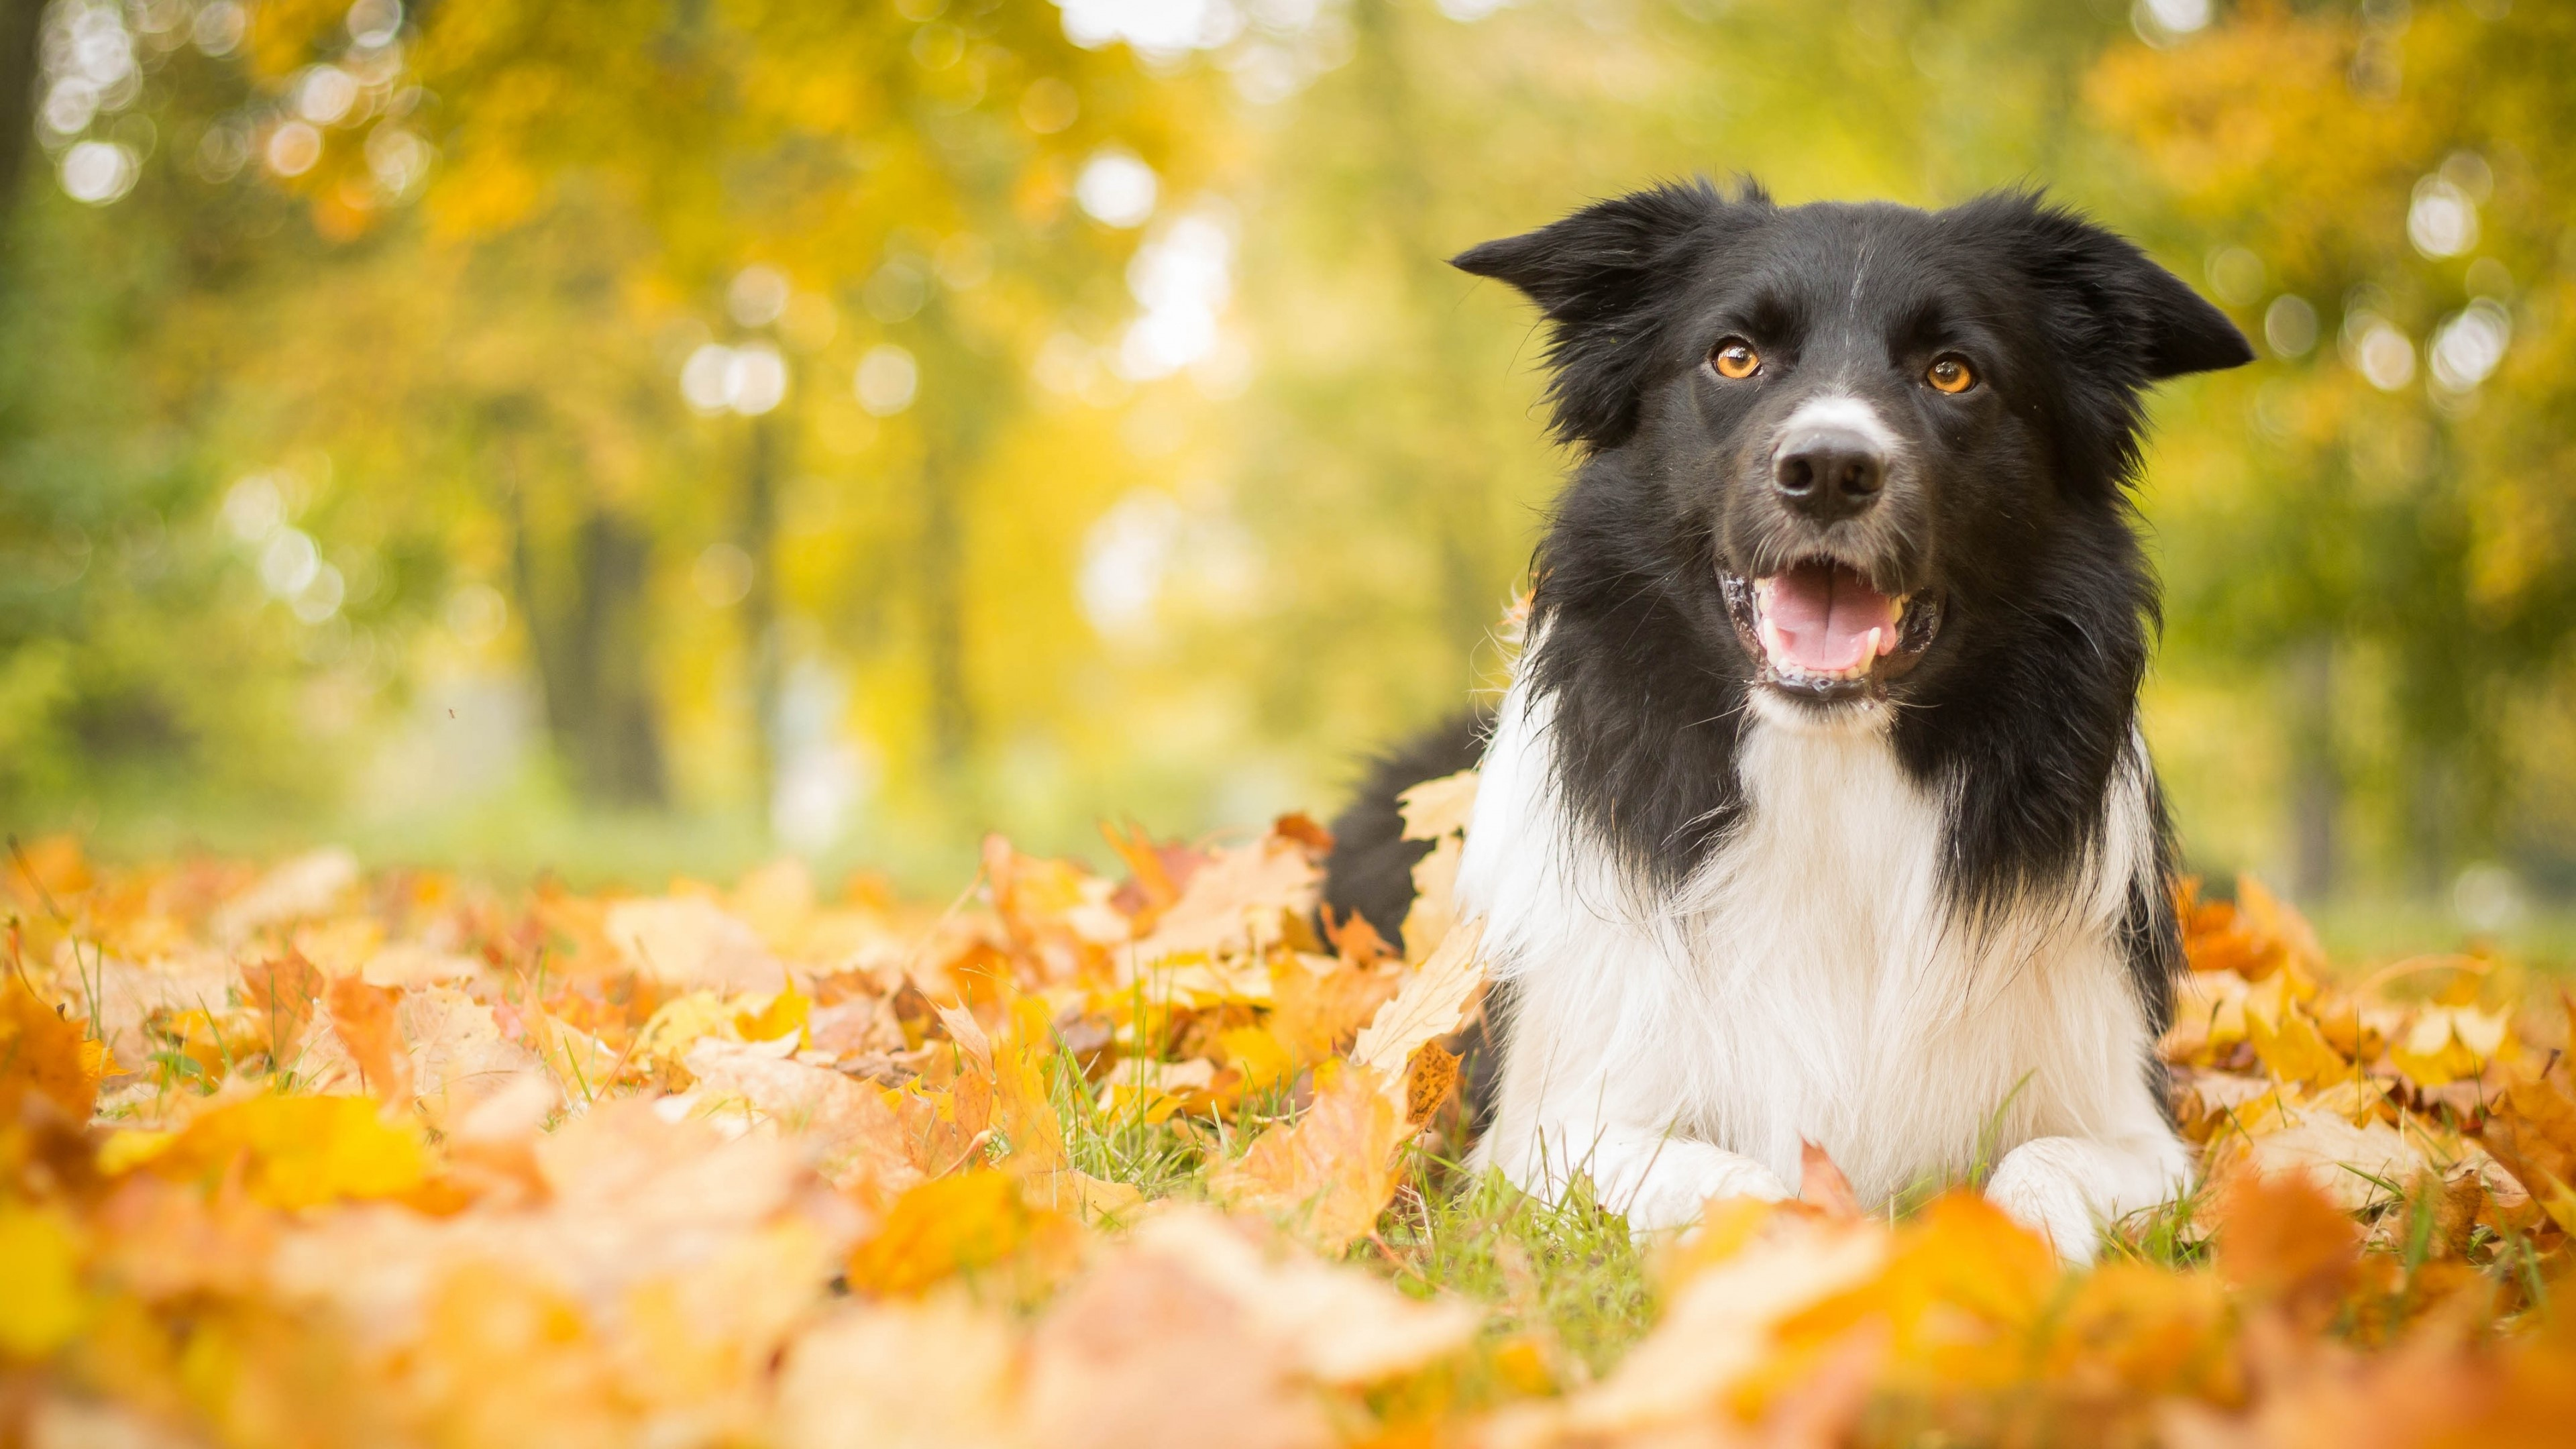 Wallpaper A puppy in autumn leaves